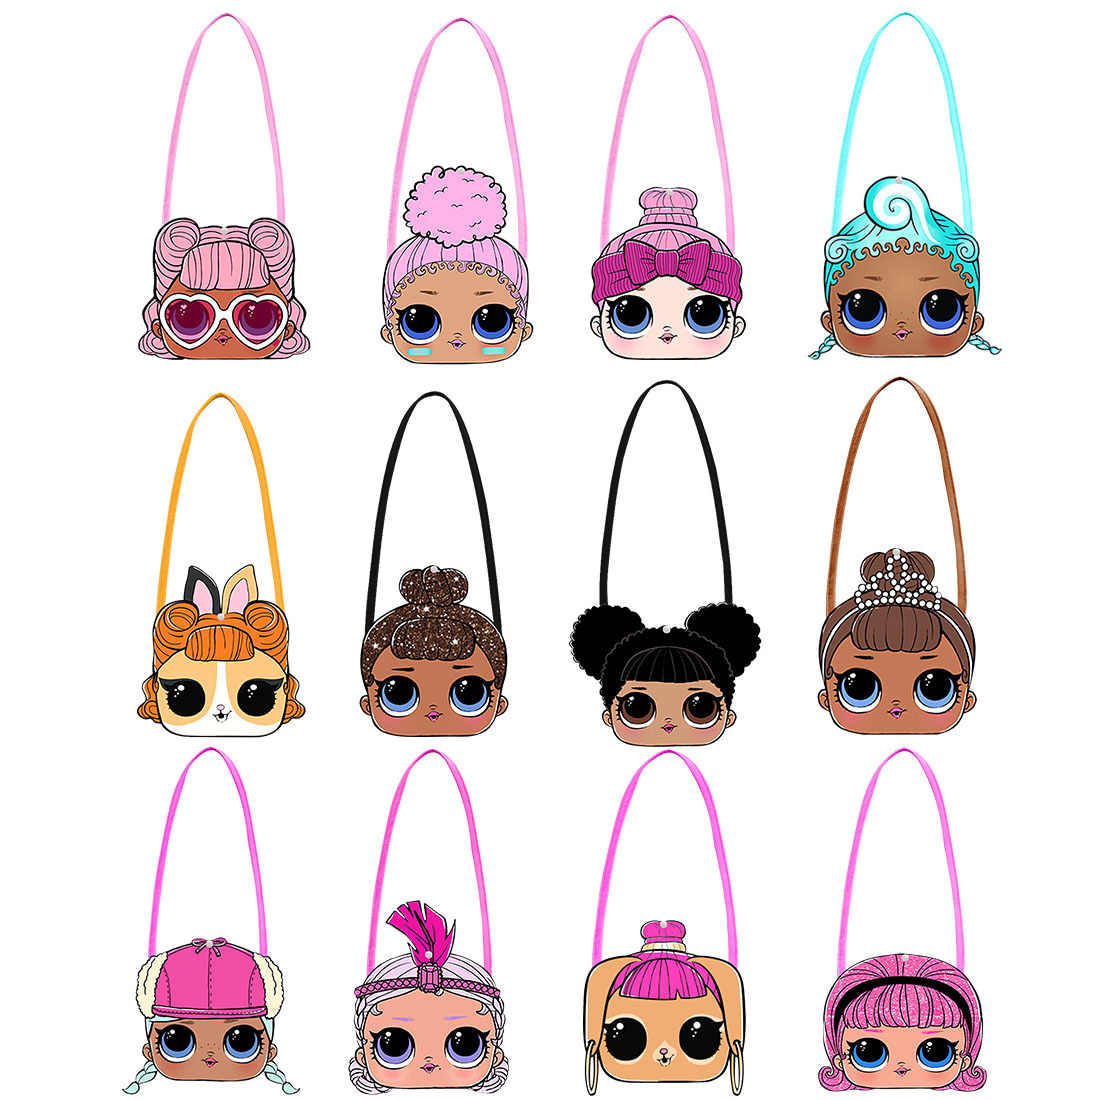 50CM LOL surprise dolls Original mochila bag cartoon Small bag One shoulder fashion cute Daily use backpack for girl's gift